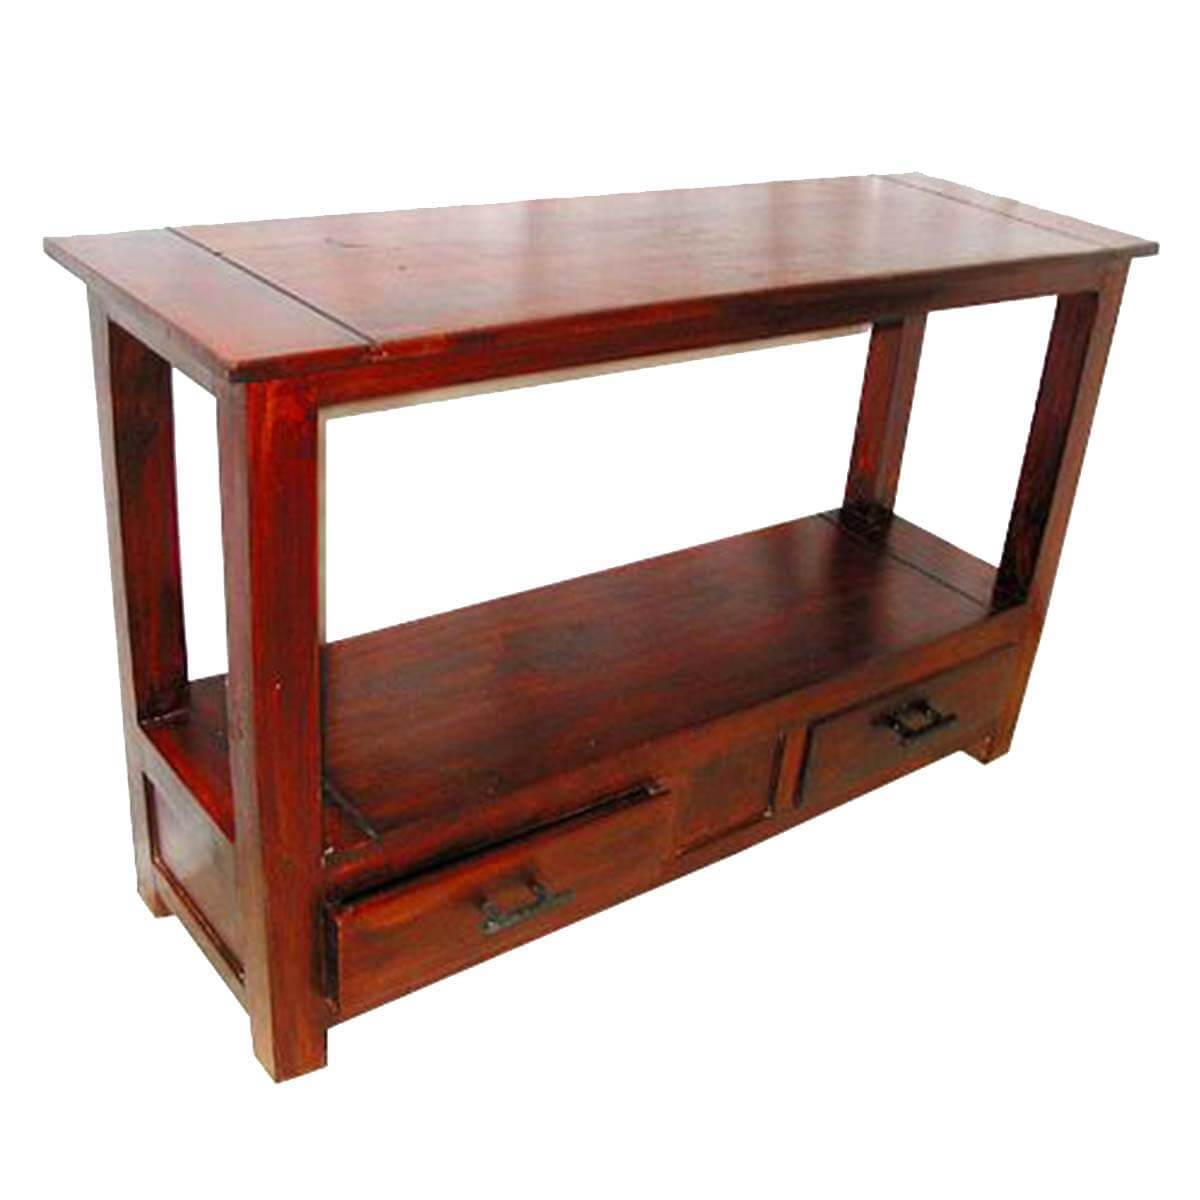 Solid wood console hall entry foyer table furniture for Furniture foyer entrance